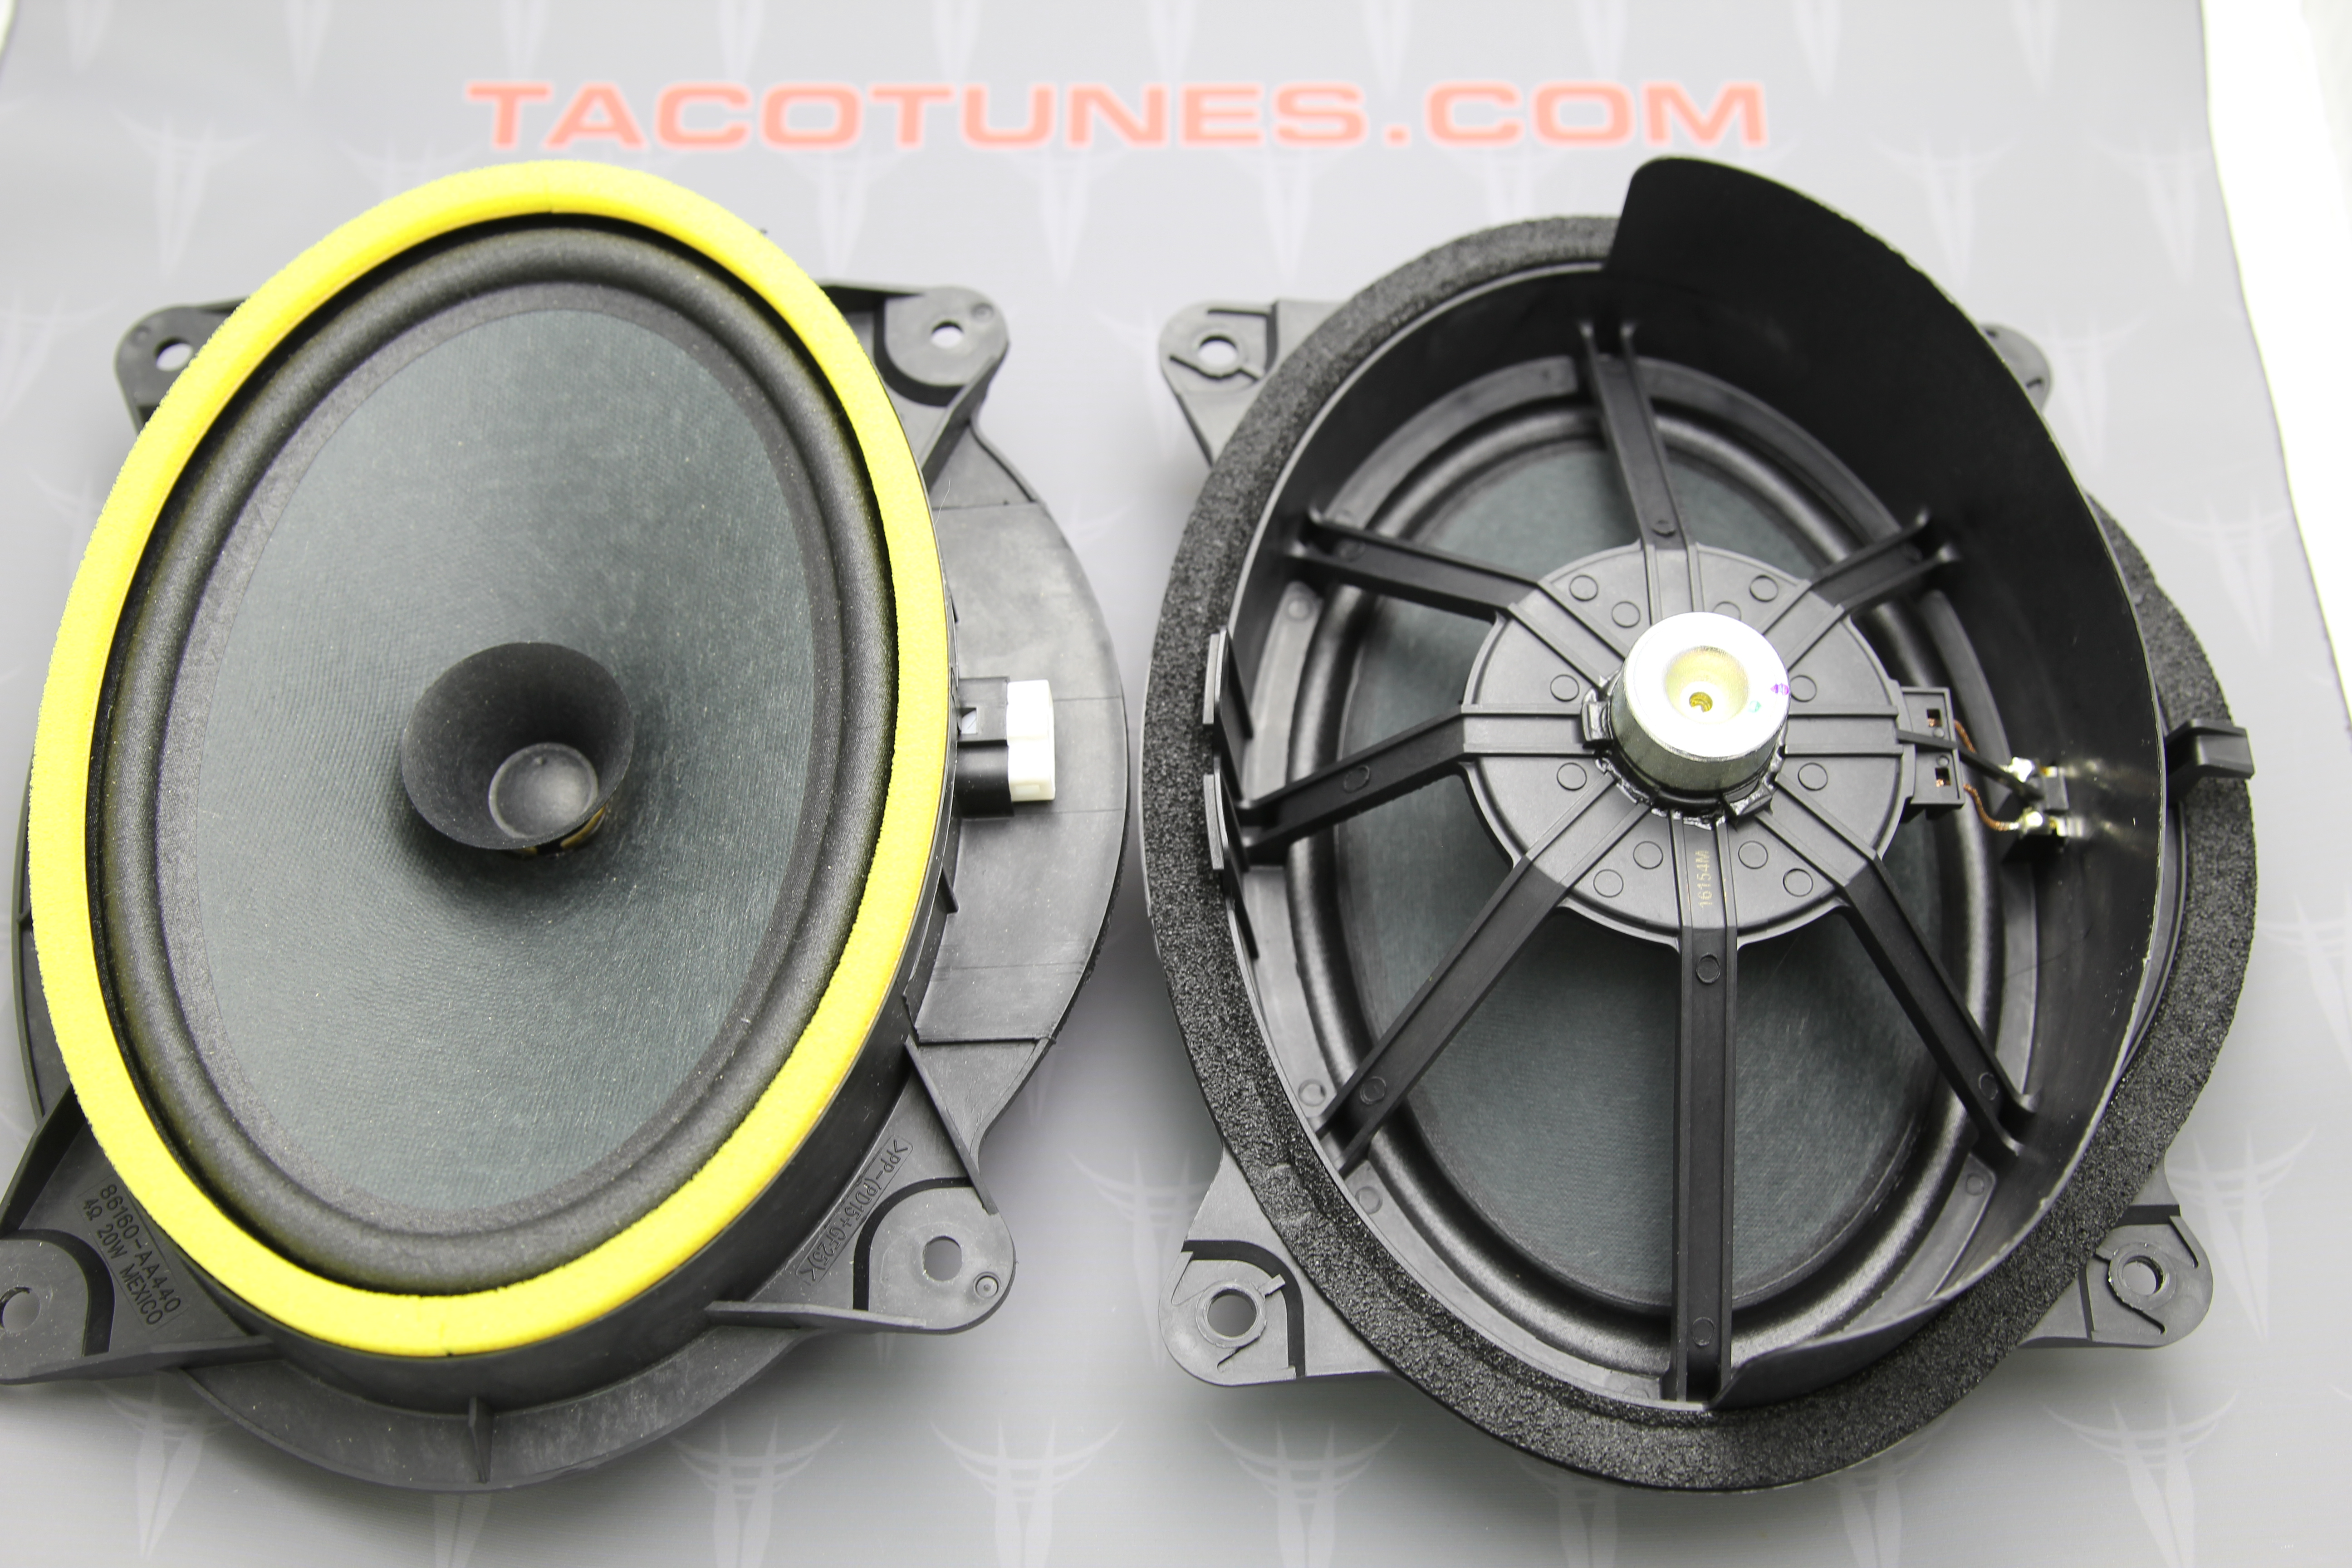 toyota fj cruiser audio upgrade products fast and easy stereo upgrade. Black Bedroom Furniture Sets. Home Design Ideas